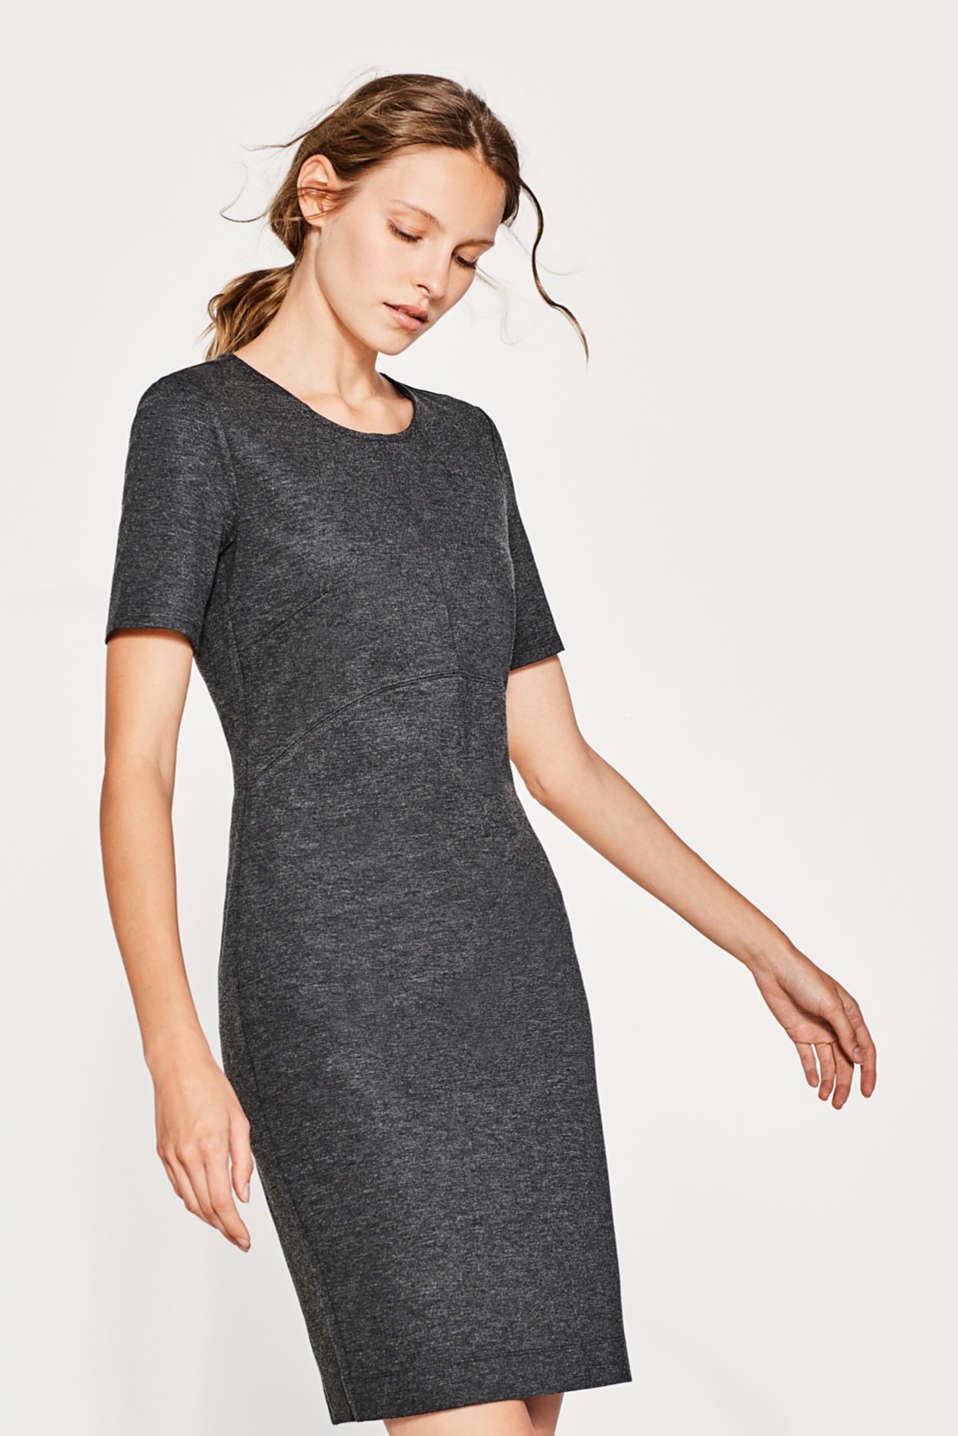 Esprit - Robe fourreau en jersey stretch dense